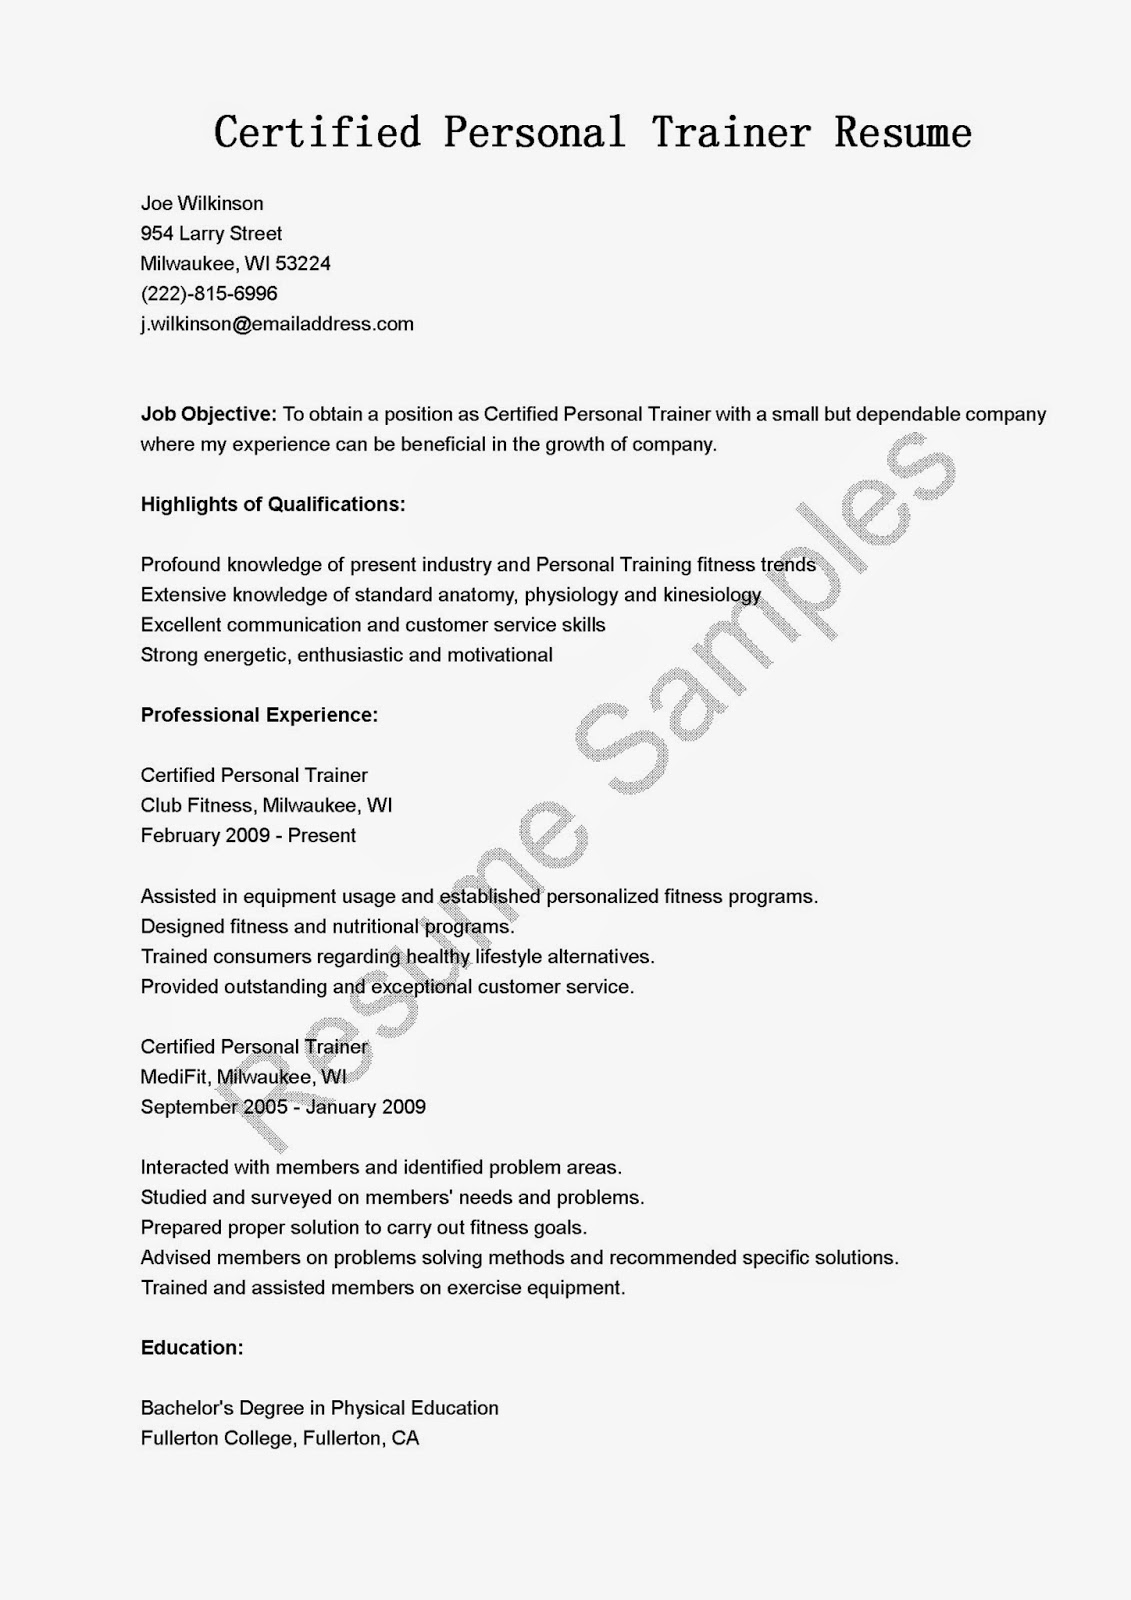 Fitness Trainer Resume Template Resume Samples Certified Personal Trainer Resume Sample